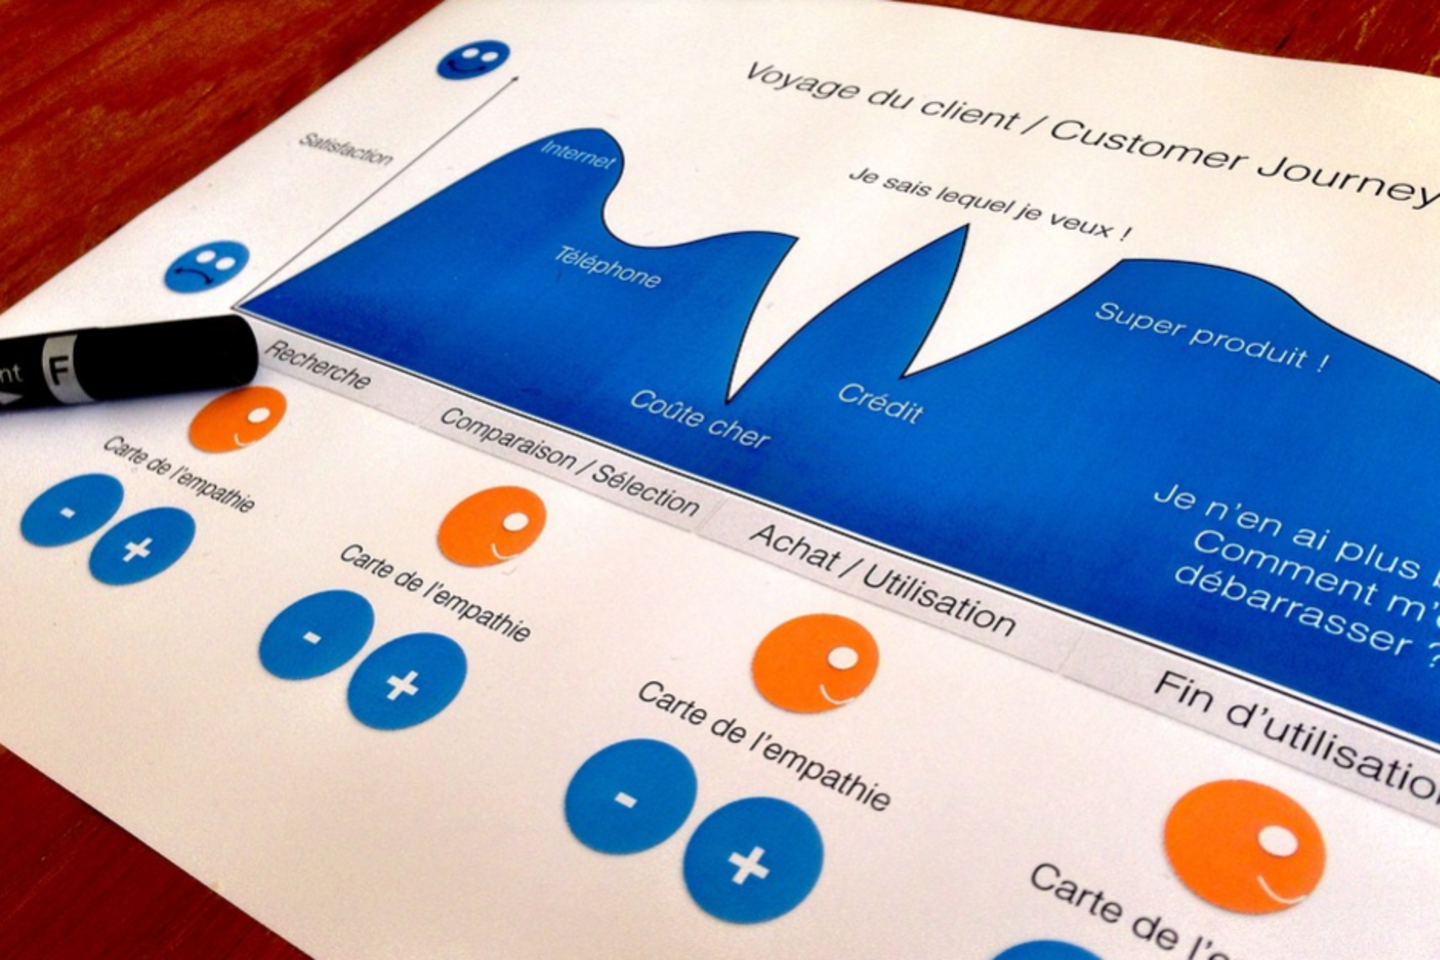 Product Journey Maps – A Visual Mapping of Customers Perspective